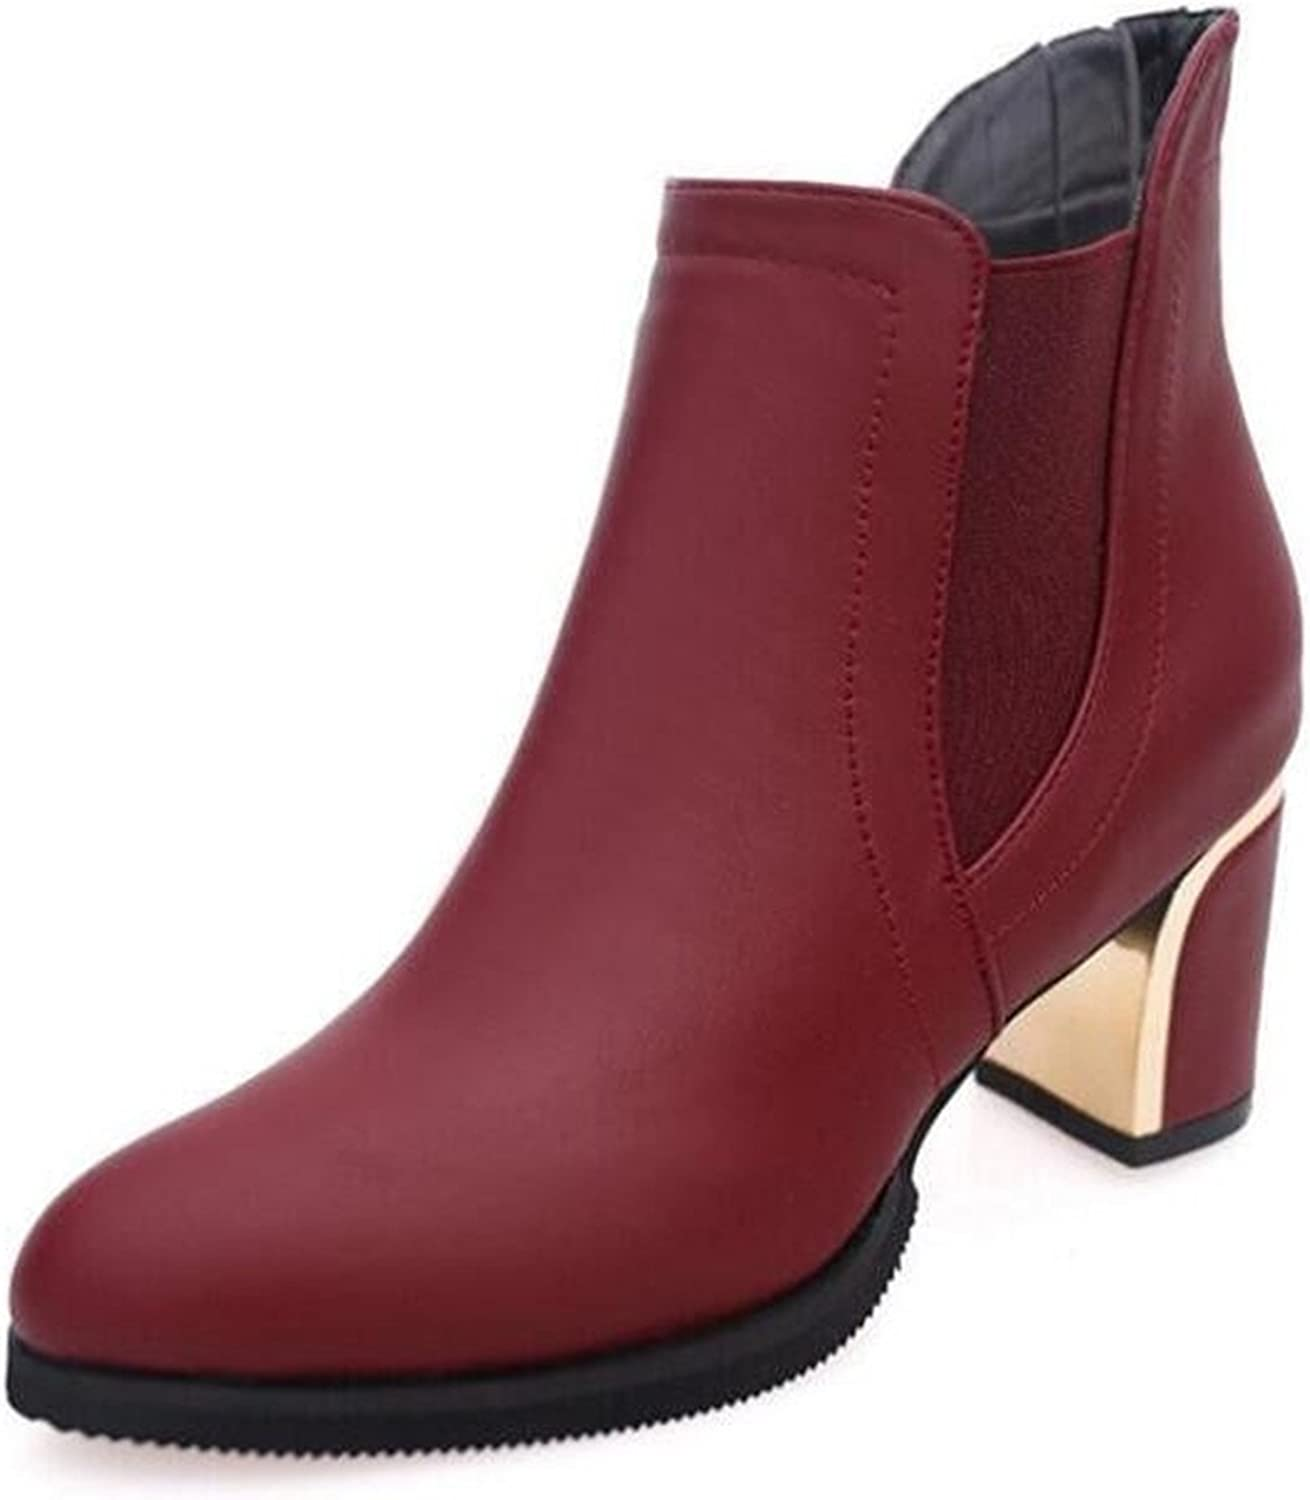 Henraly Winter Women Ankle Boots Solid European Ladies shoes Boots Size 35-40